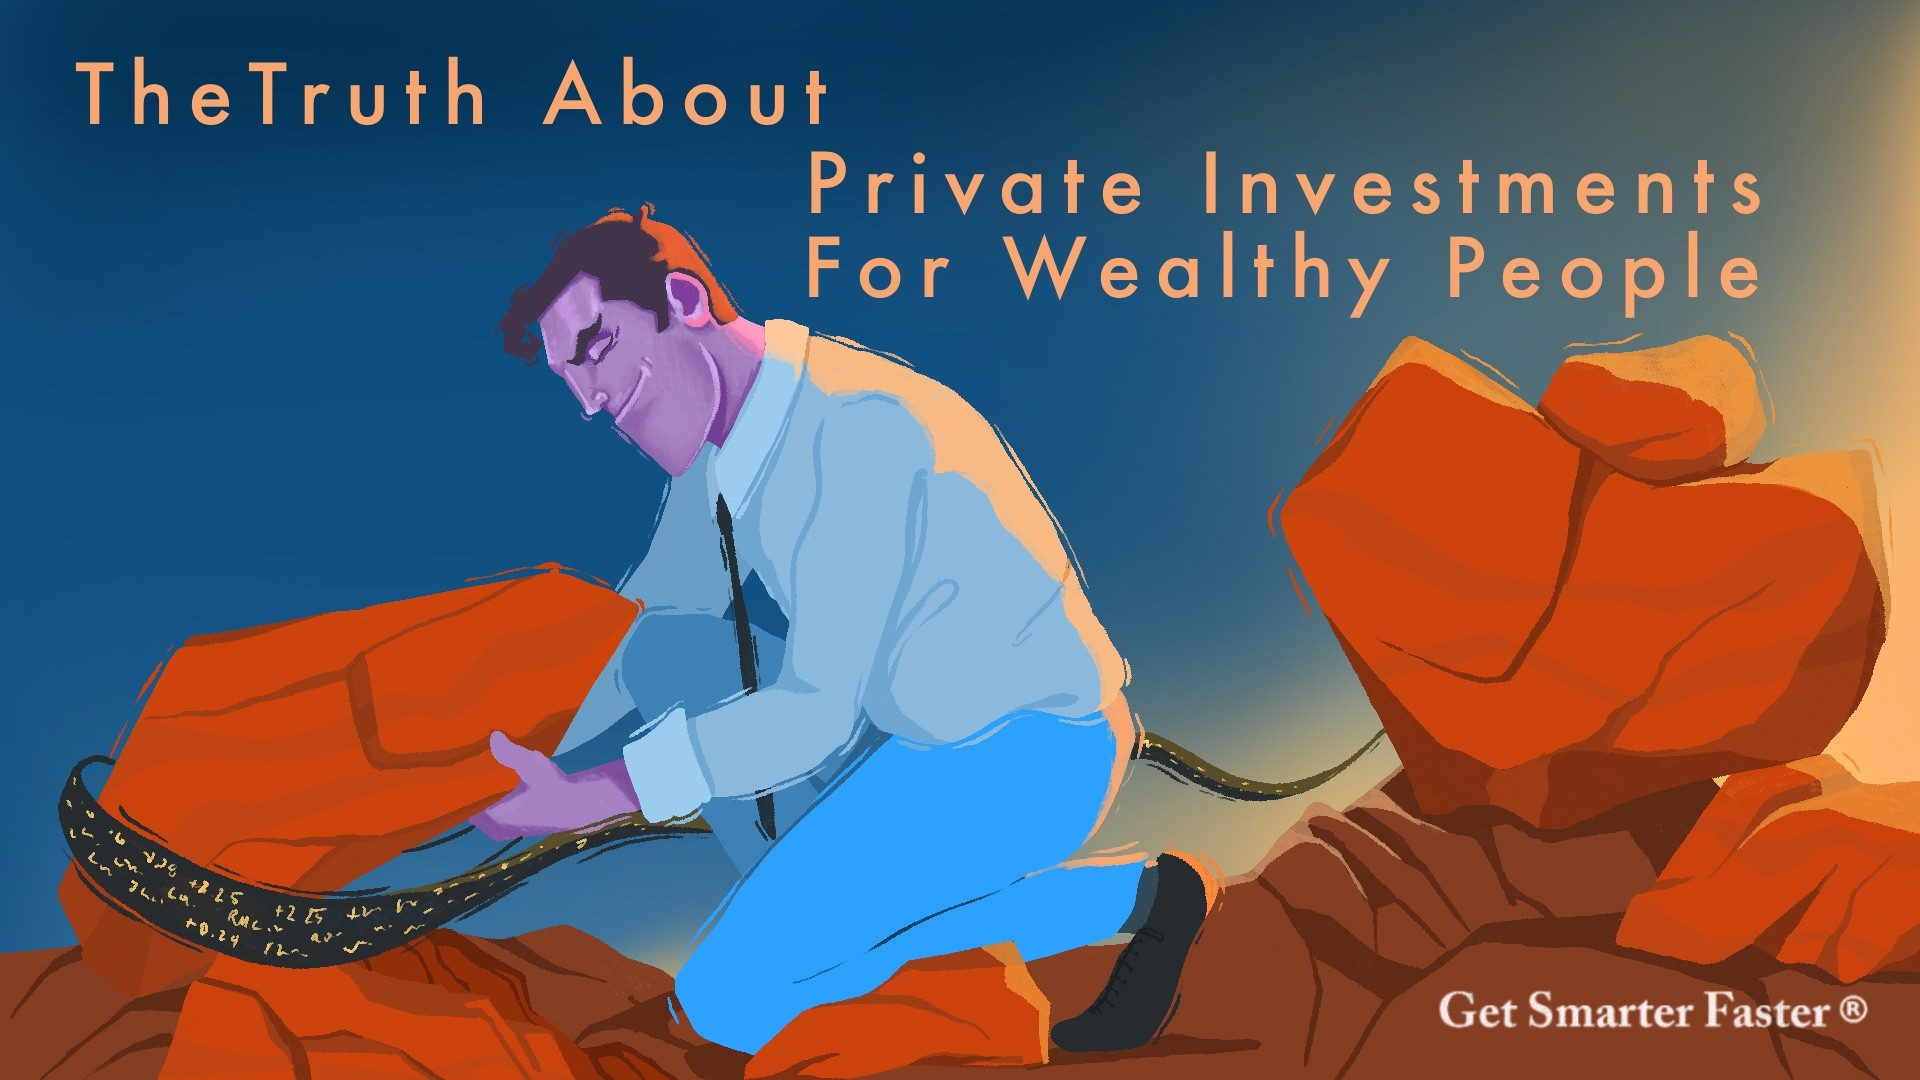 The Truth About Private Investments For Wealthy People